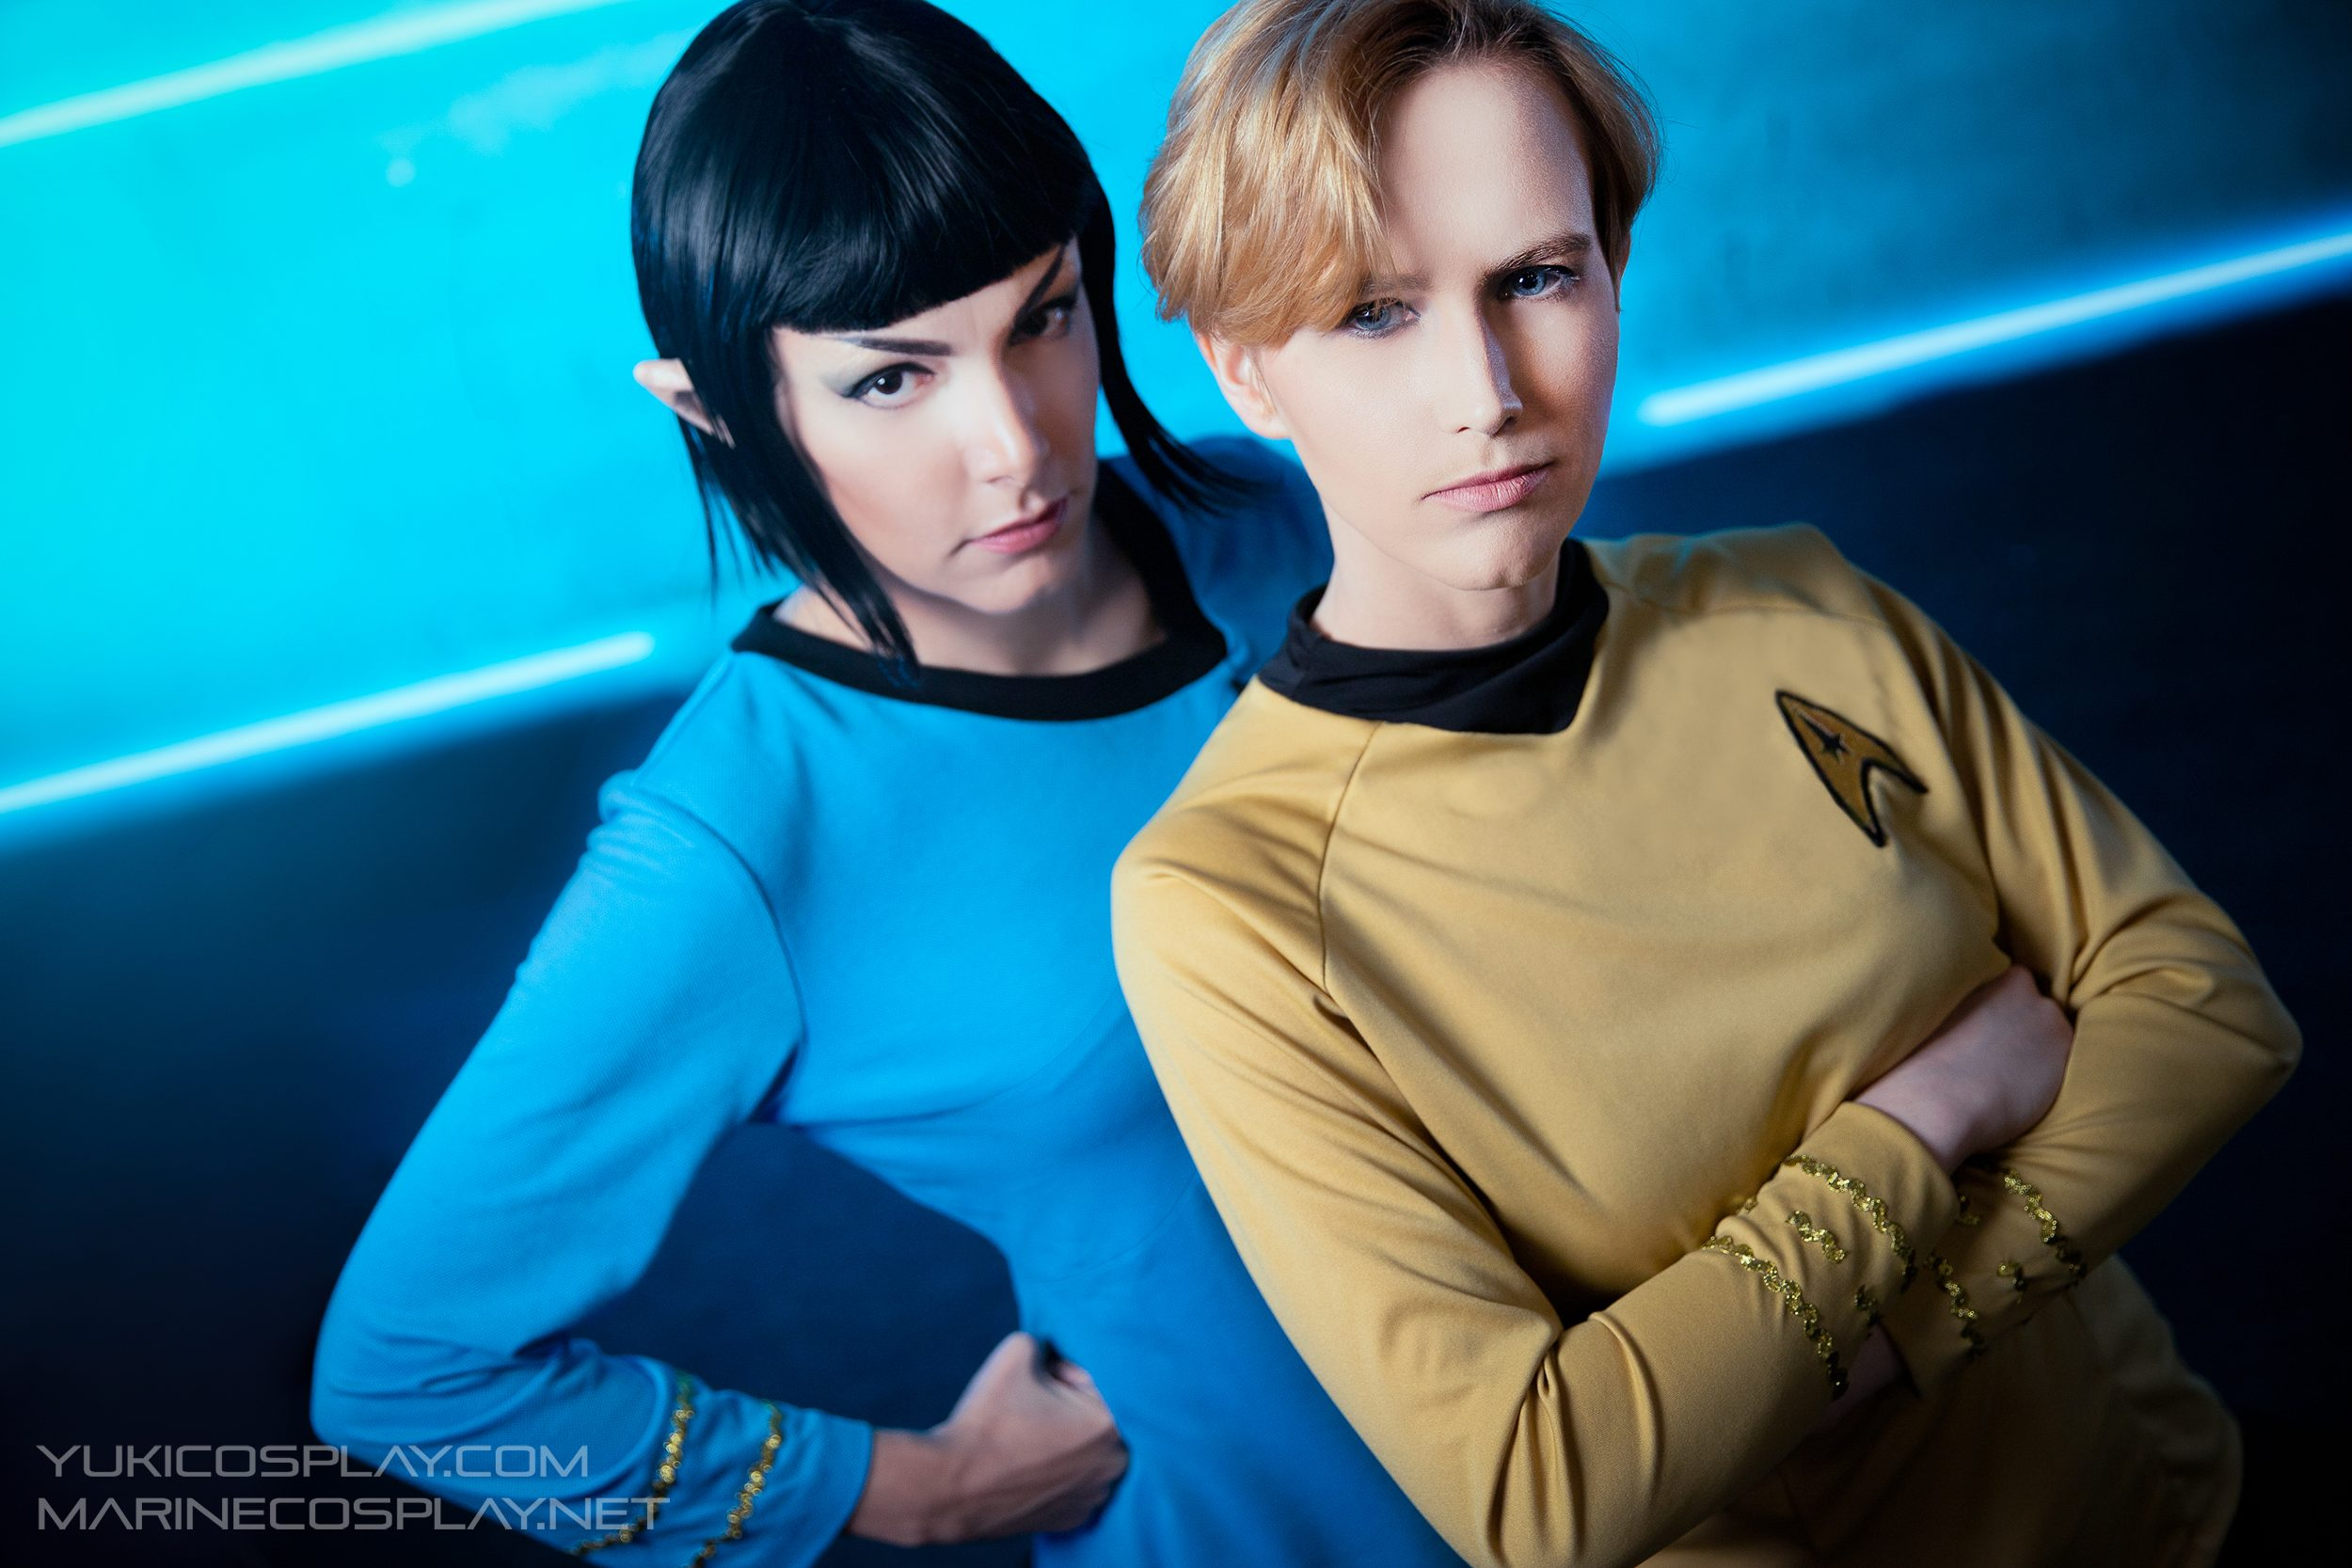 [PHOTOSHOOT][Star Trek] Female Spock and Kirk